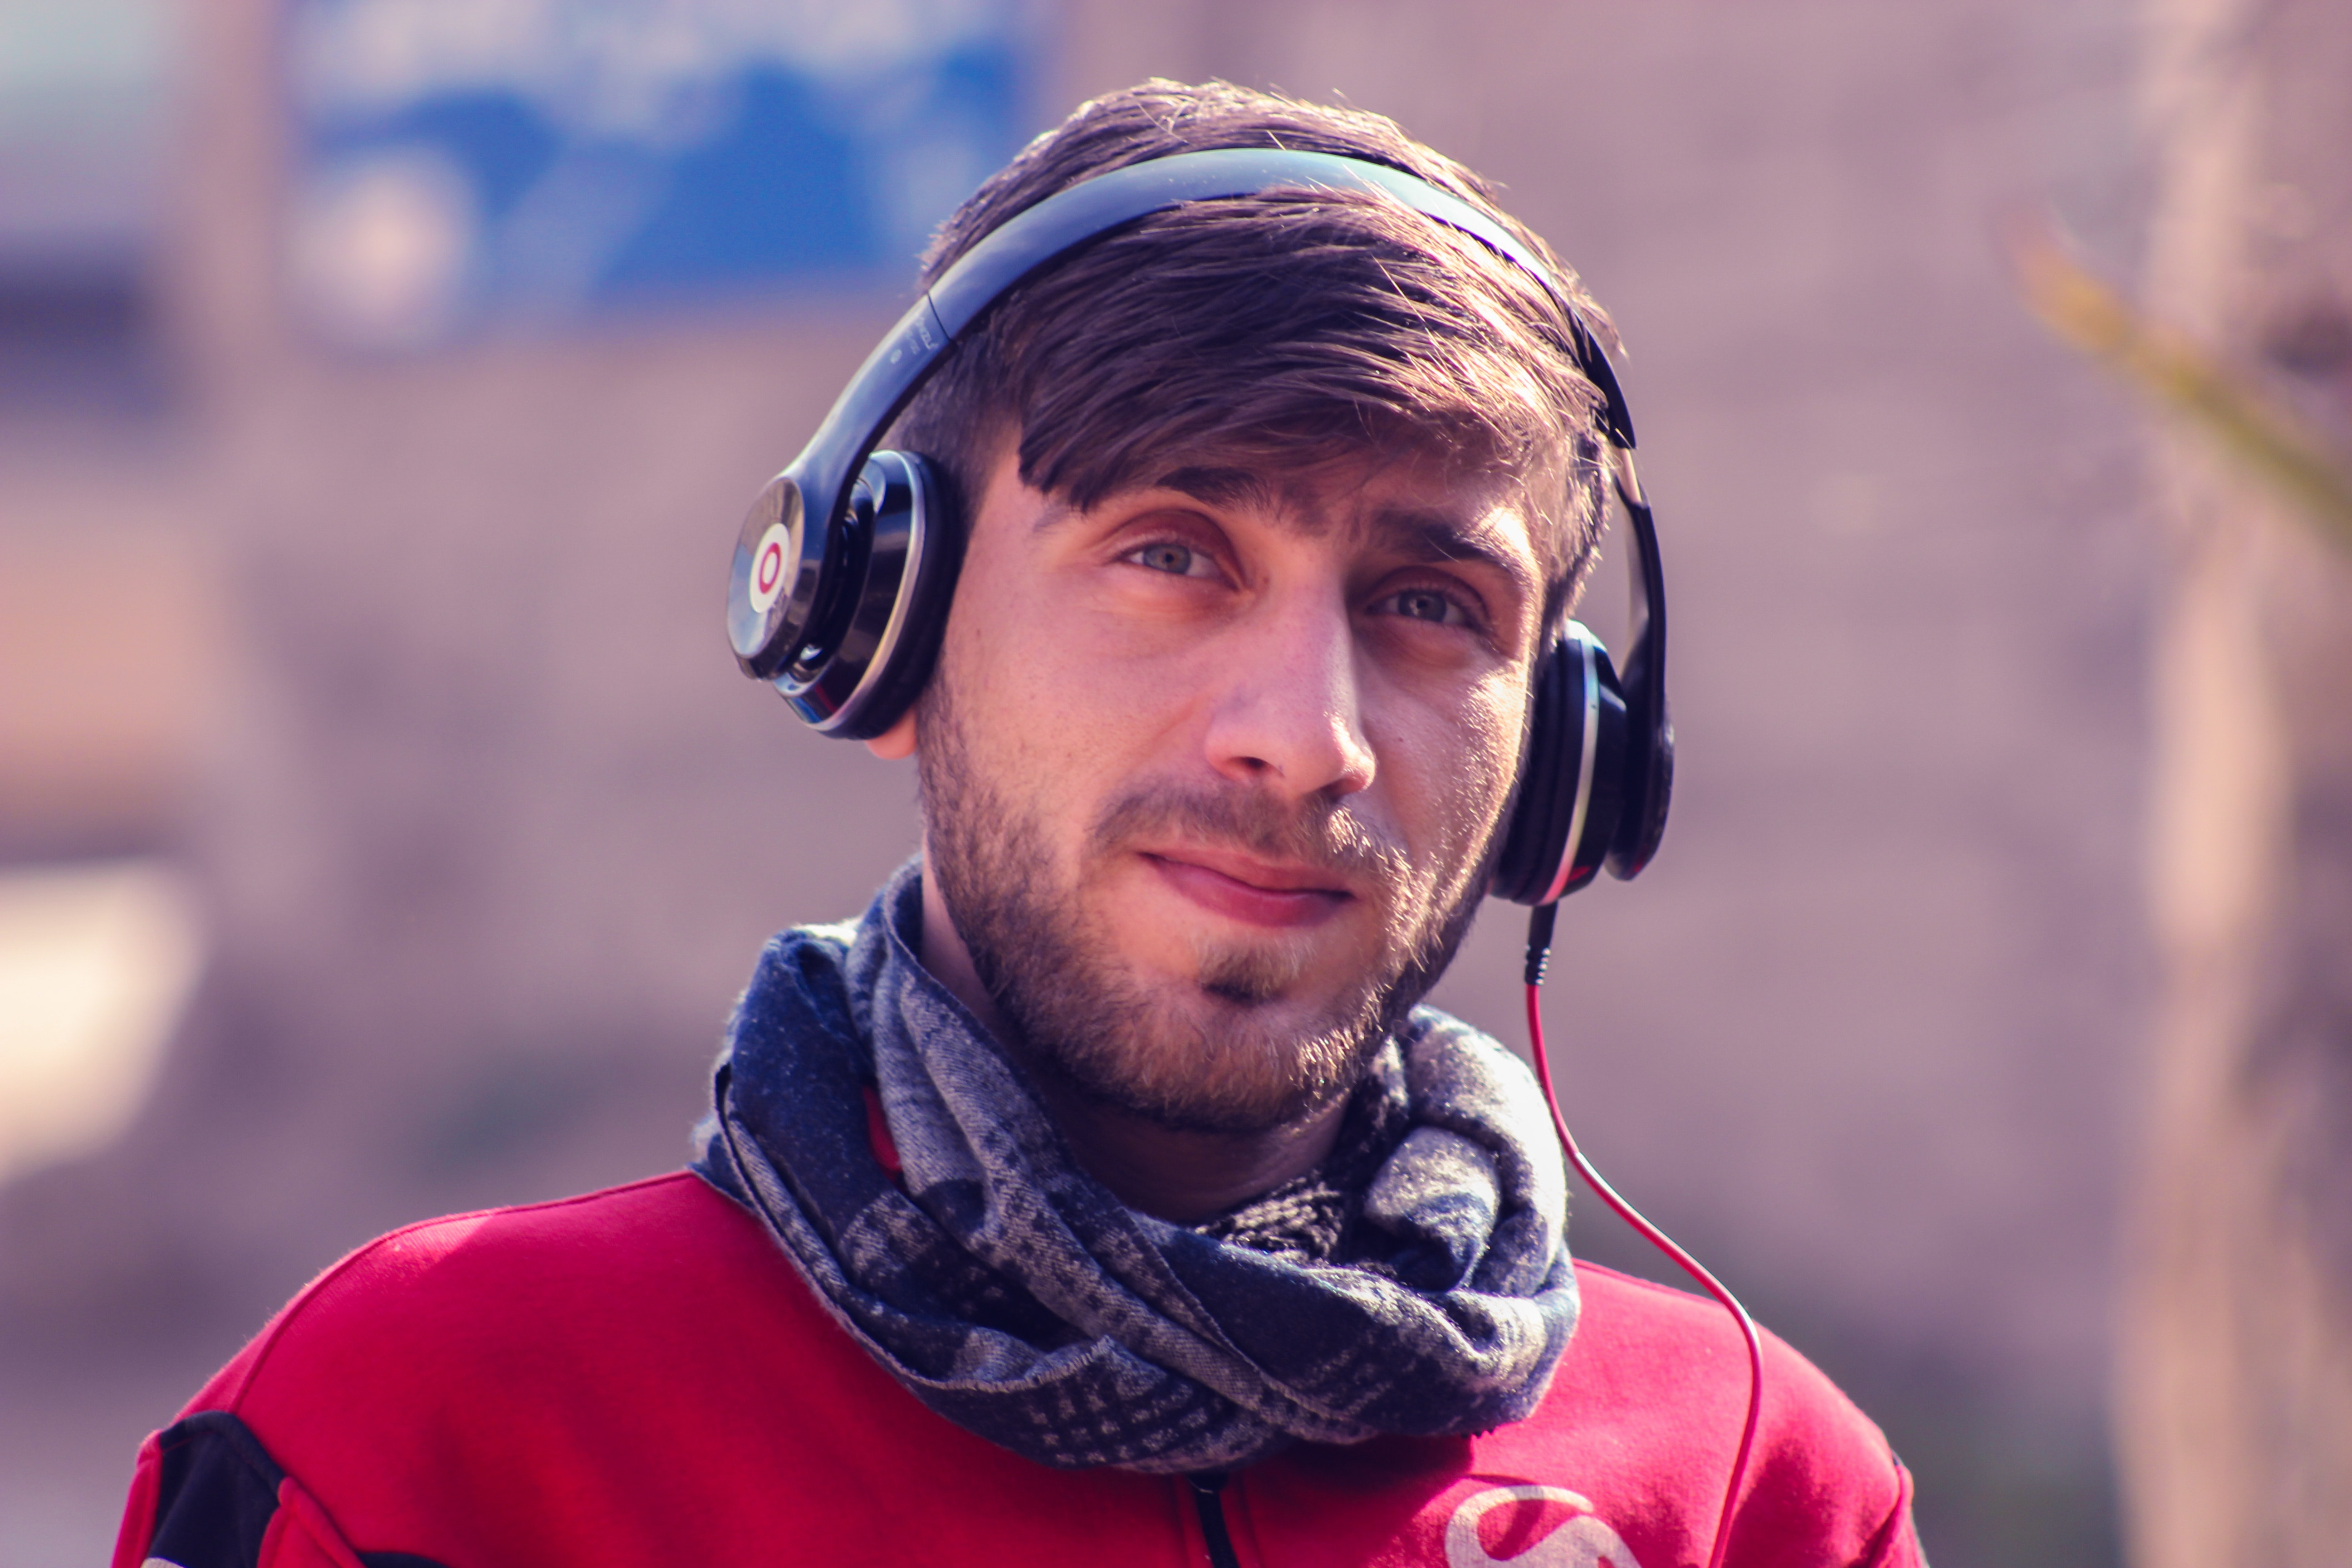 Free Photo Closeup Photo Of A Man Wearing Red Top Gray Scarf And Black Beats By Dr Dre Headphones Adult Headphones Leisure Free Download Jooinn